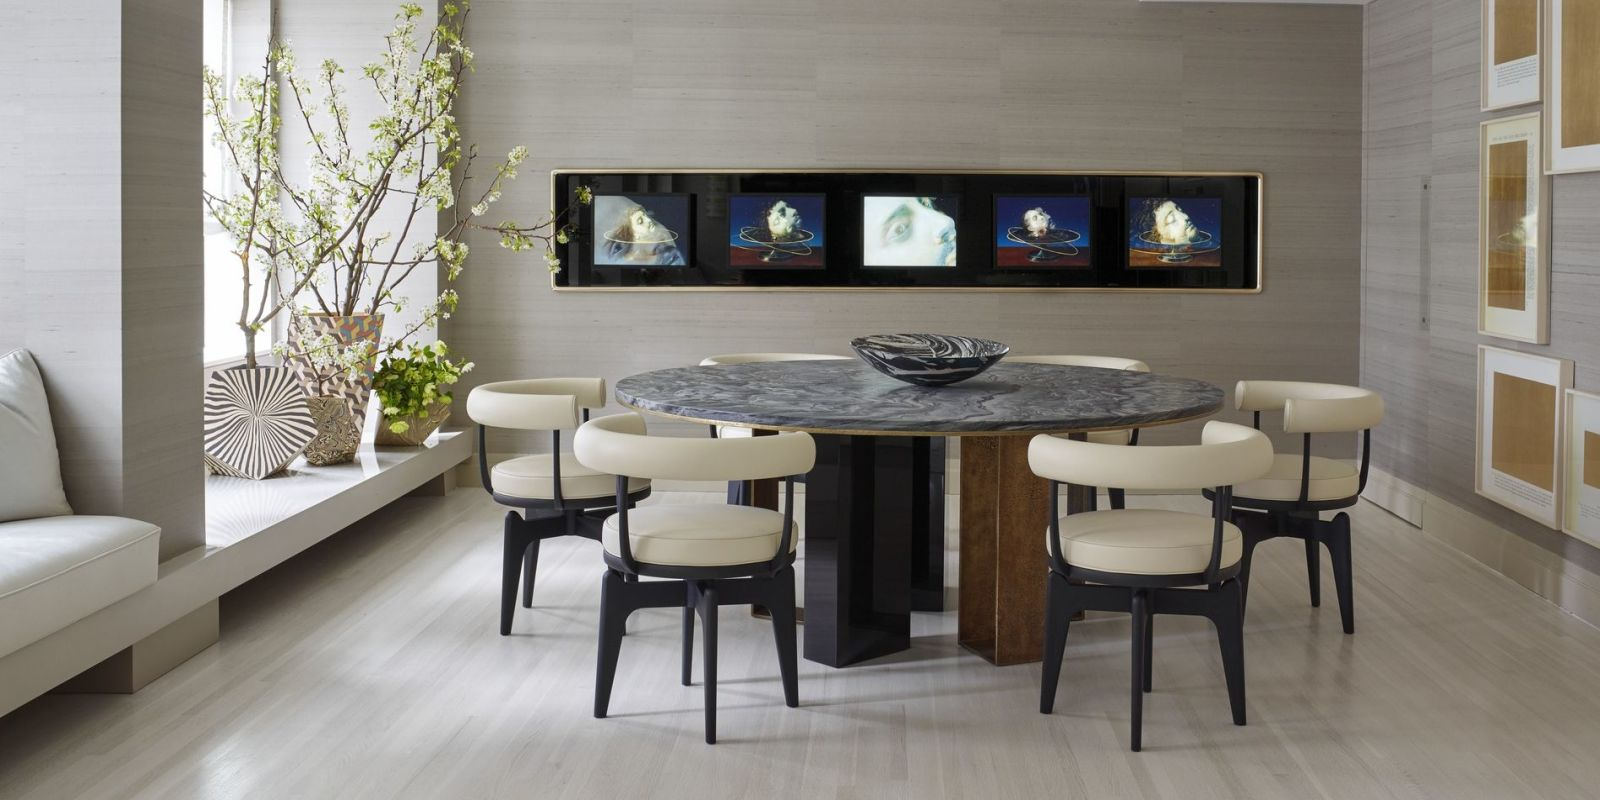 25 modern dining room decorating ideas contemporary for Decoration dinner room